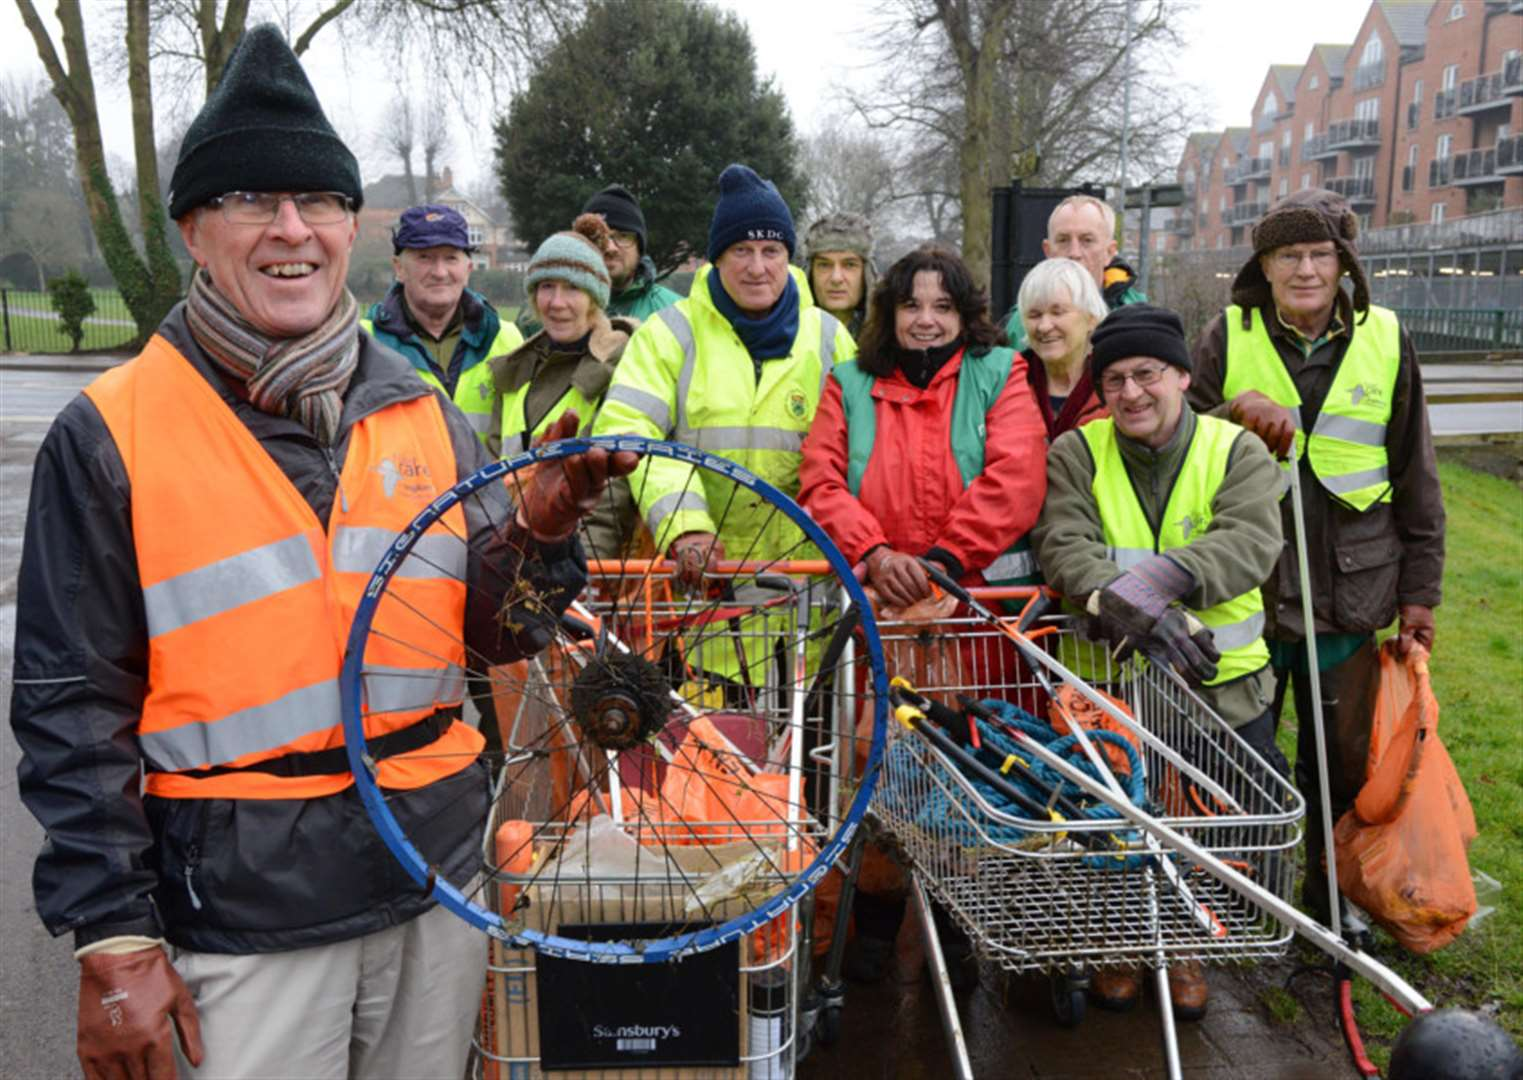 Rubbish weighing in at 170kg collected by Grantham Rivercare volunteers